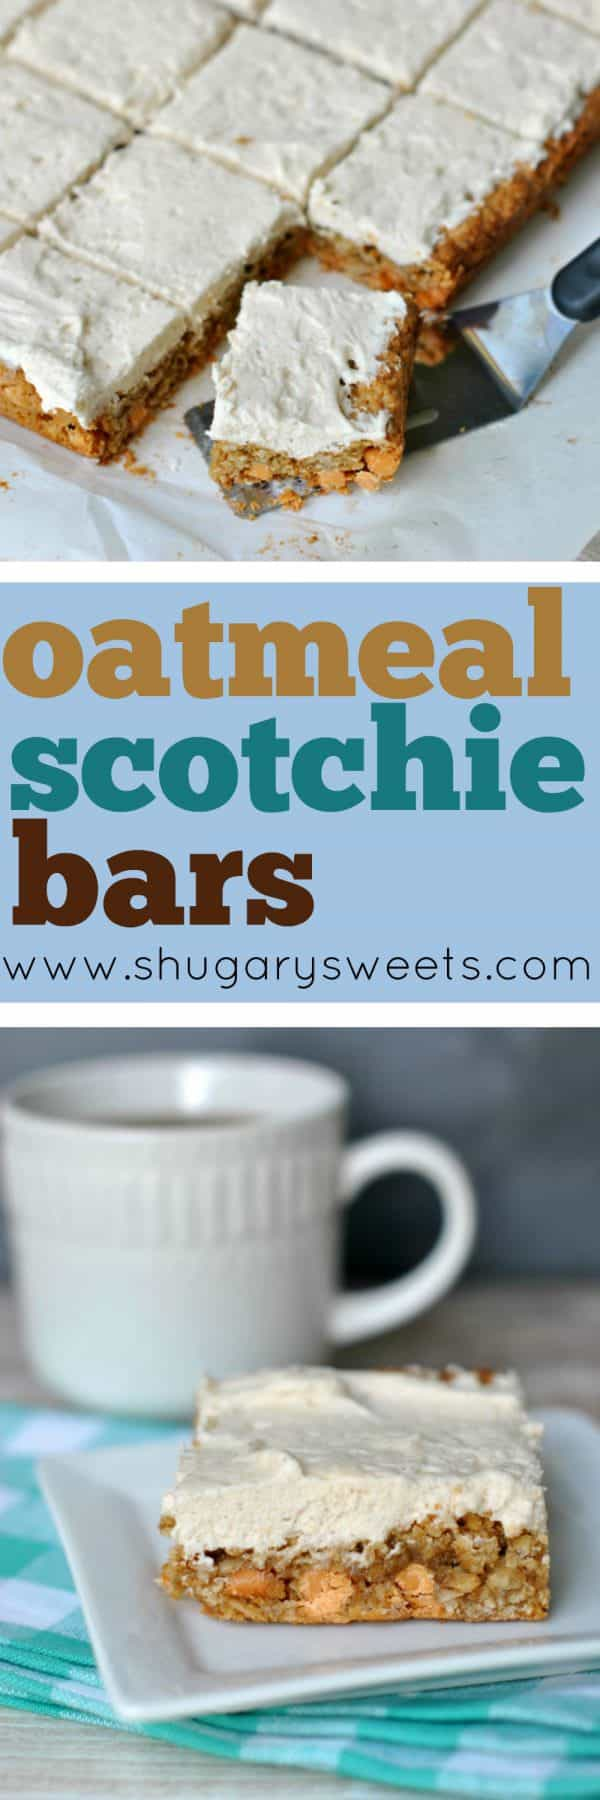 Soft and chewy, these classic Oatmeal Scotchie Bars are divine! I topped them with a sweet Cinnamon frosting for a little extra indulgence!